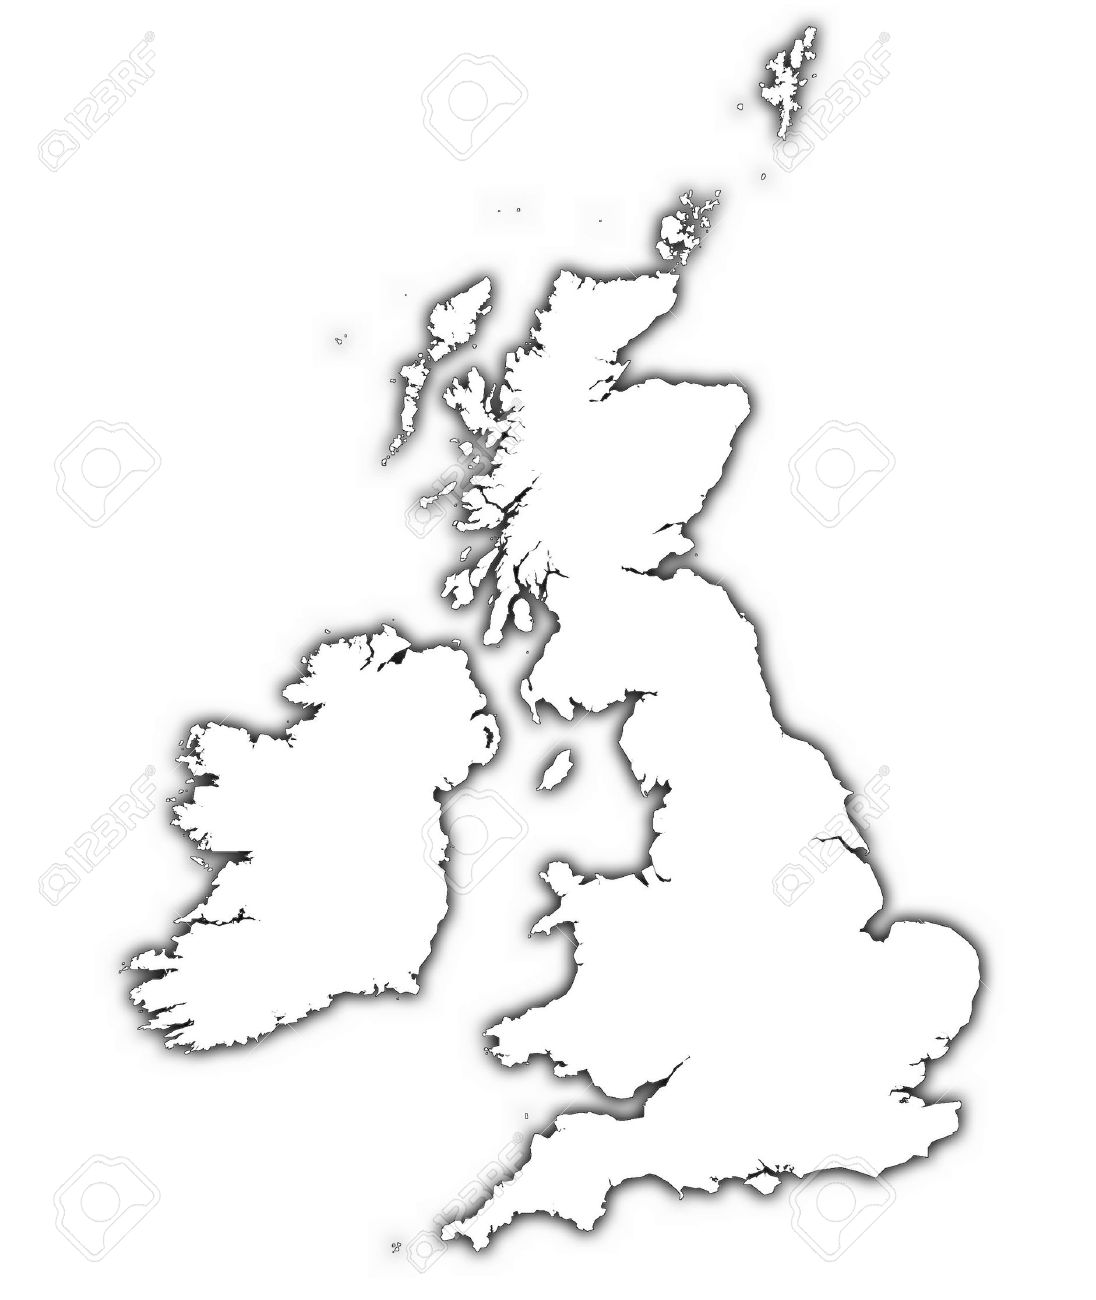 1096x1300 Great Britain And Ireland Outline Map With Shadow. Detailed